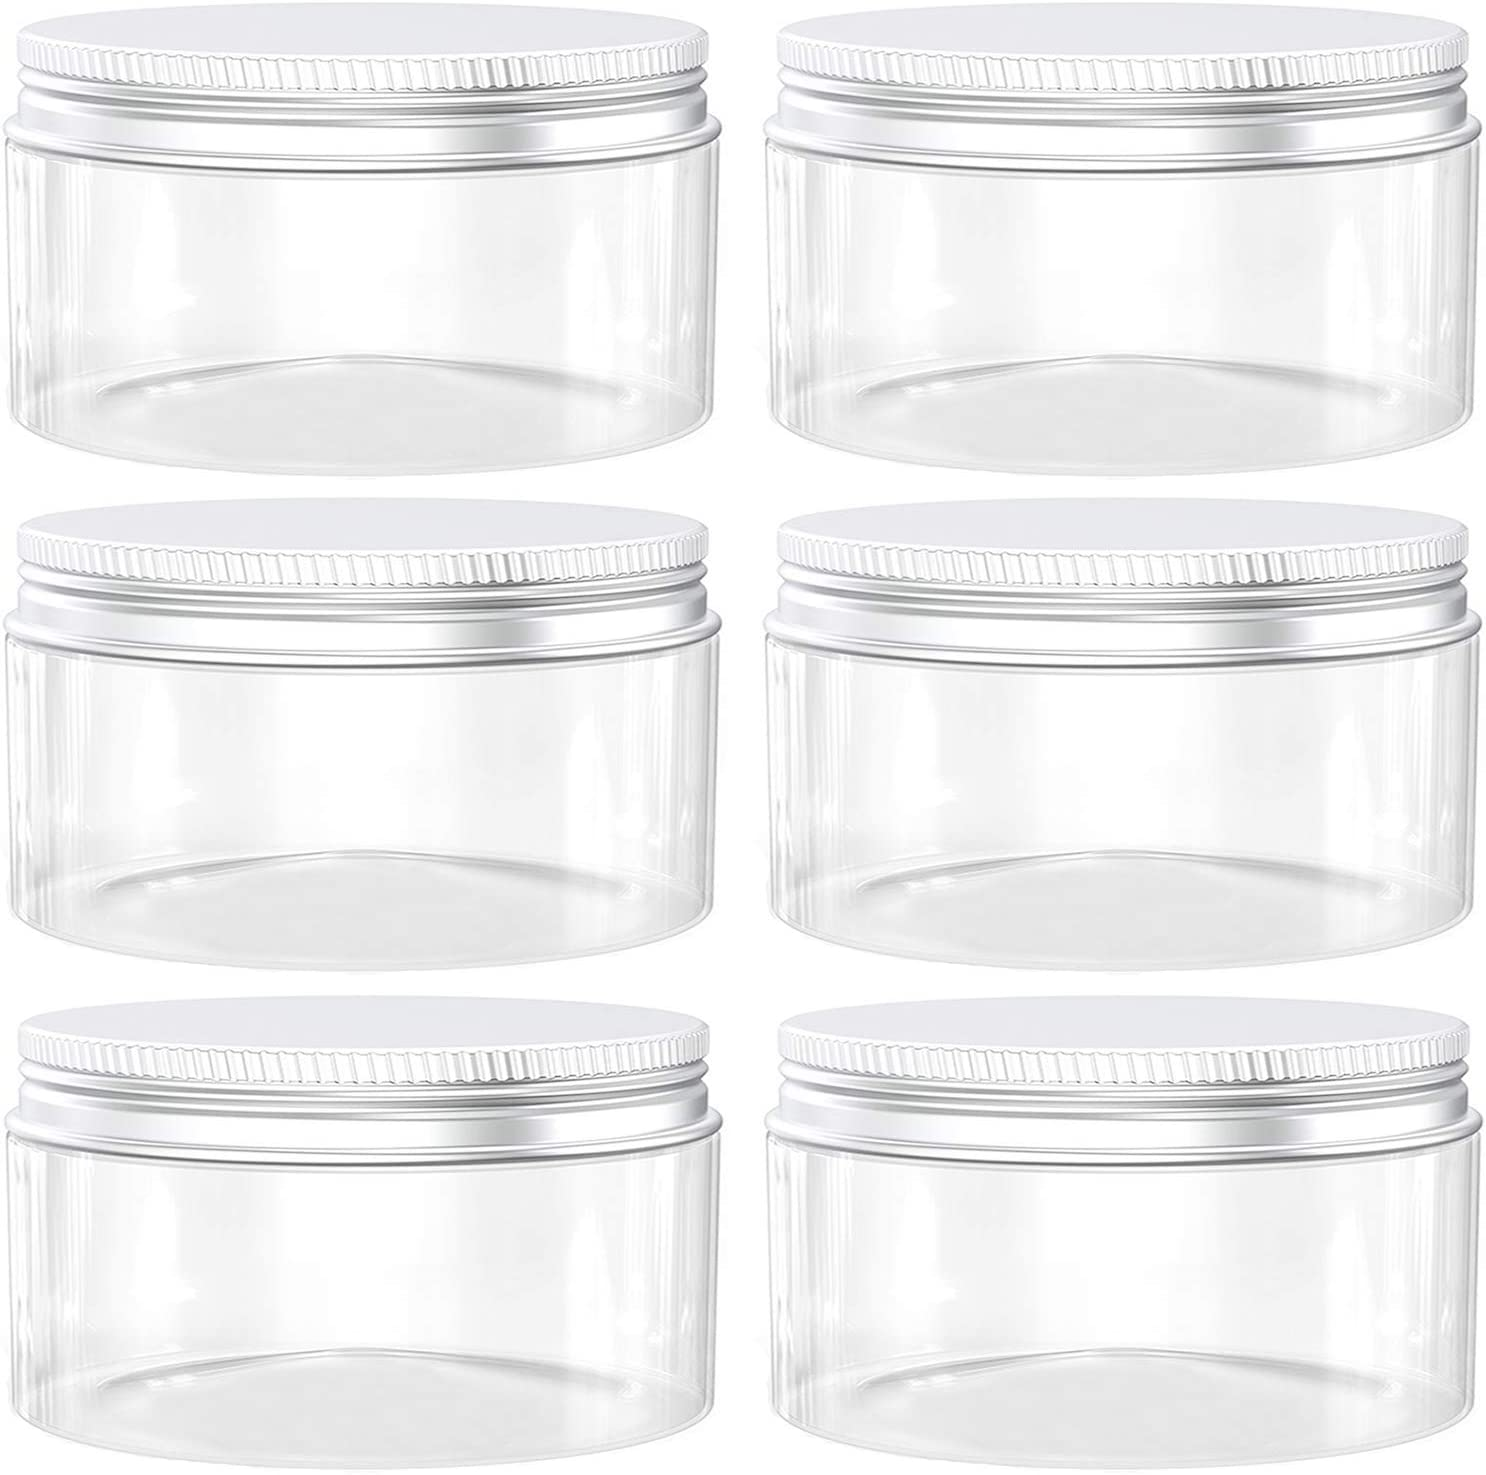 Axe Sickle 6 Ounce Plastic Jars Clear Plastic Mason Jars Storage Containers Wide Mouth With Lids For Kitchen & Household Storage Airtight Container 6 PCS